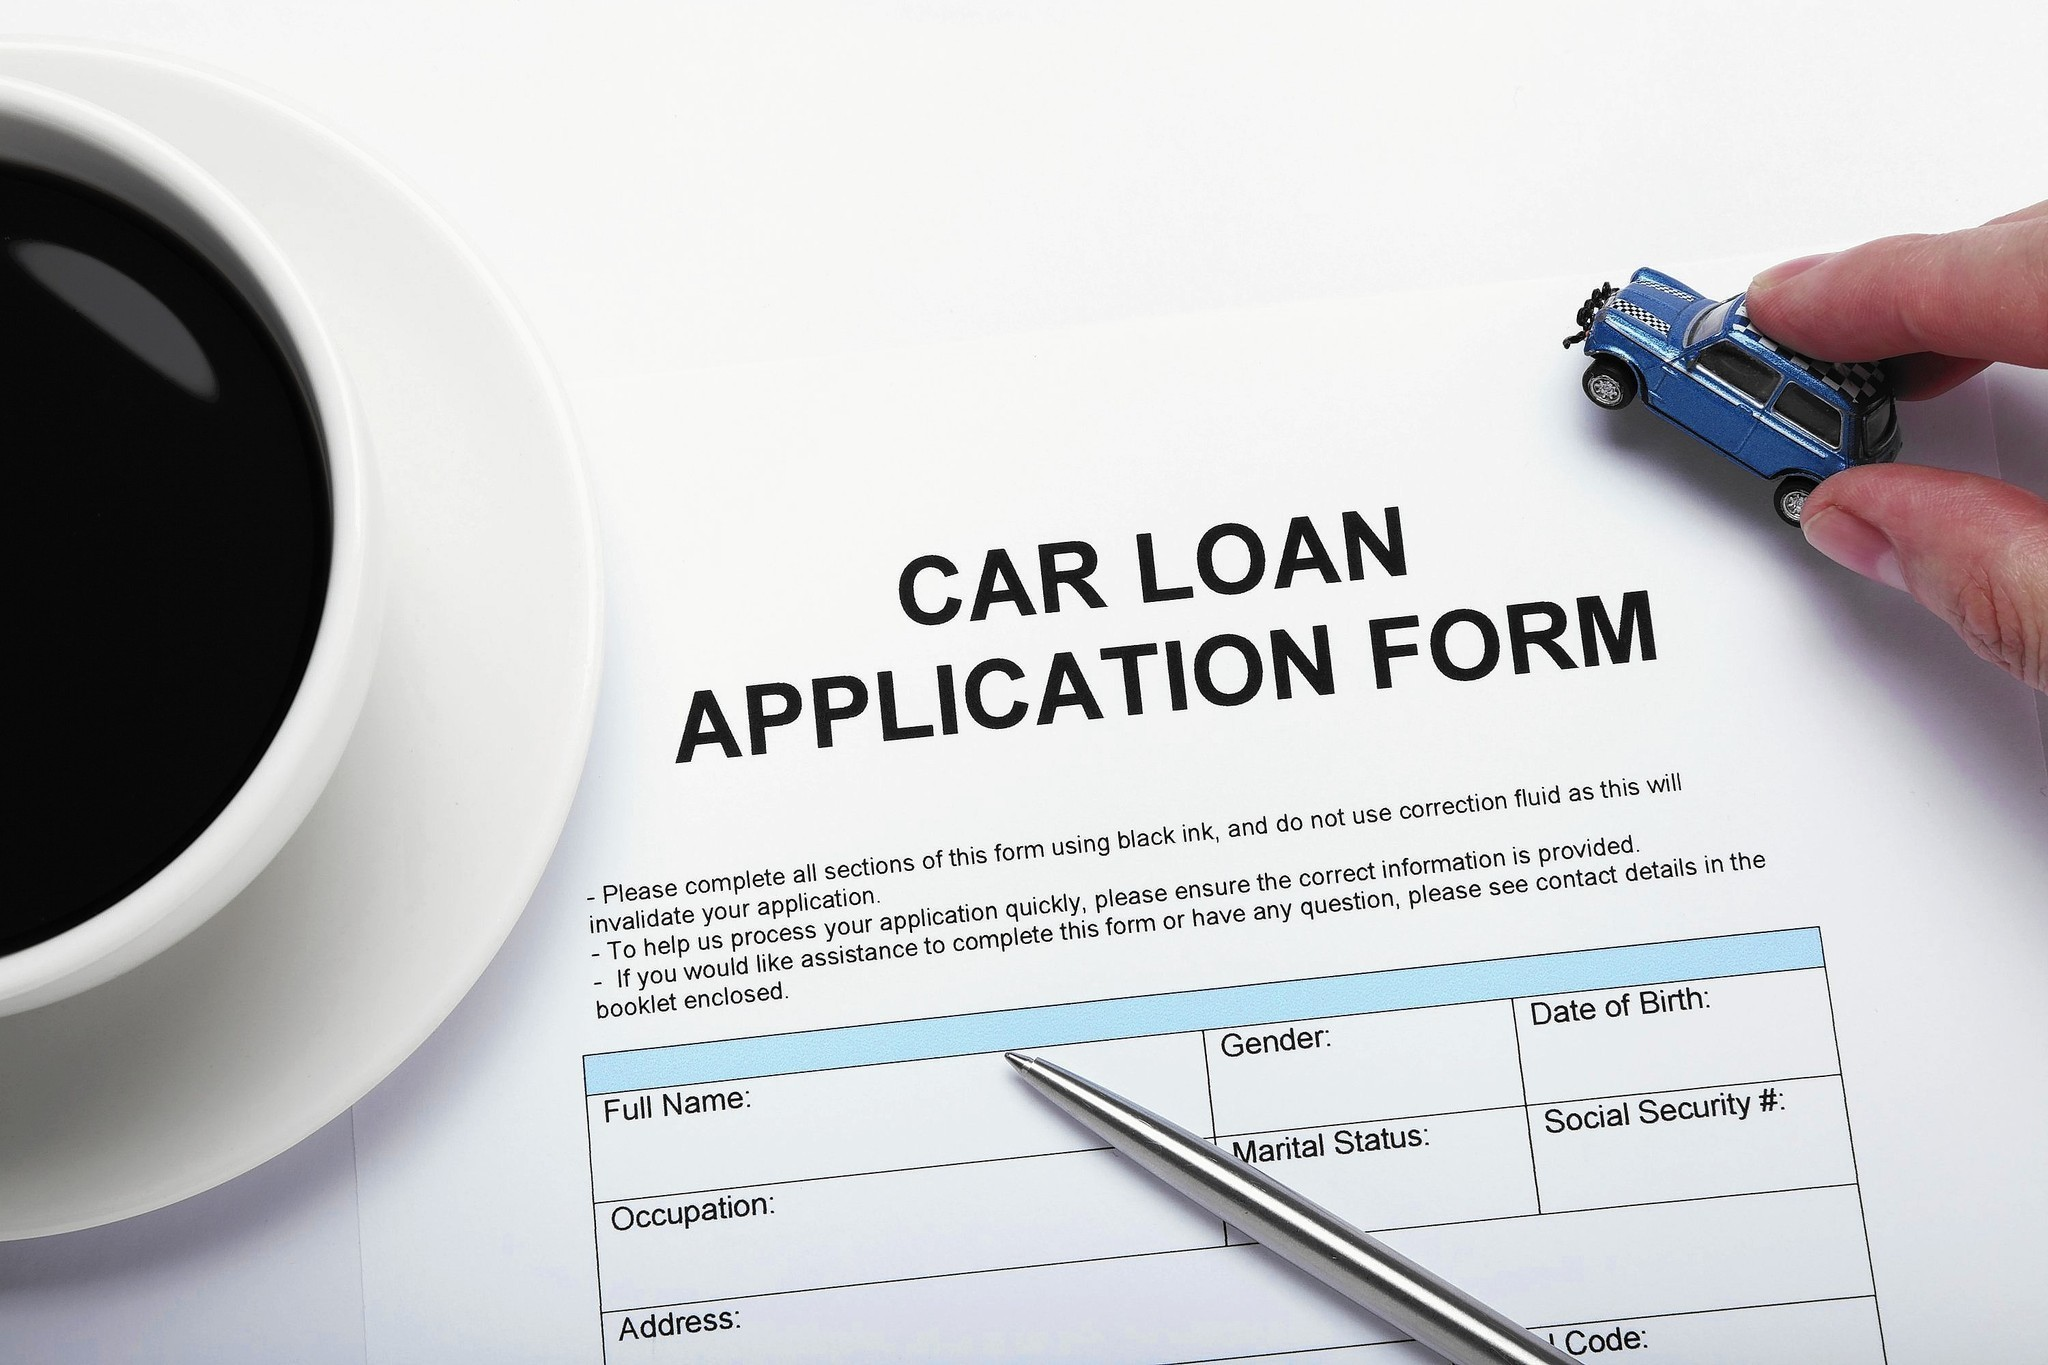 Why Should I Apply for a Car Loan?